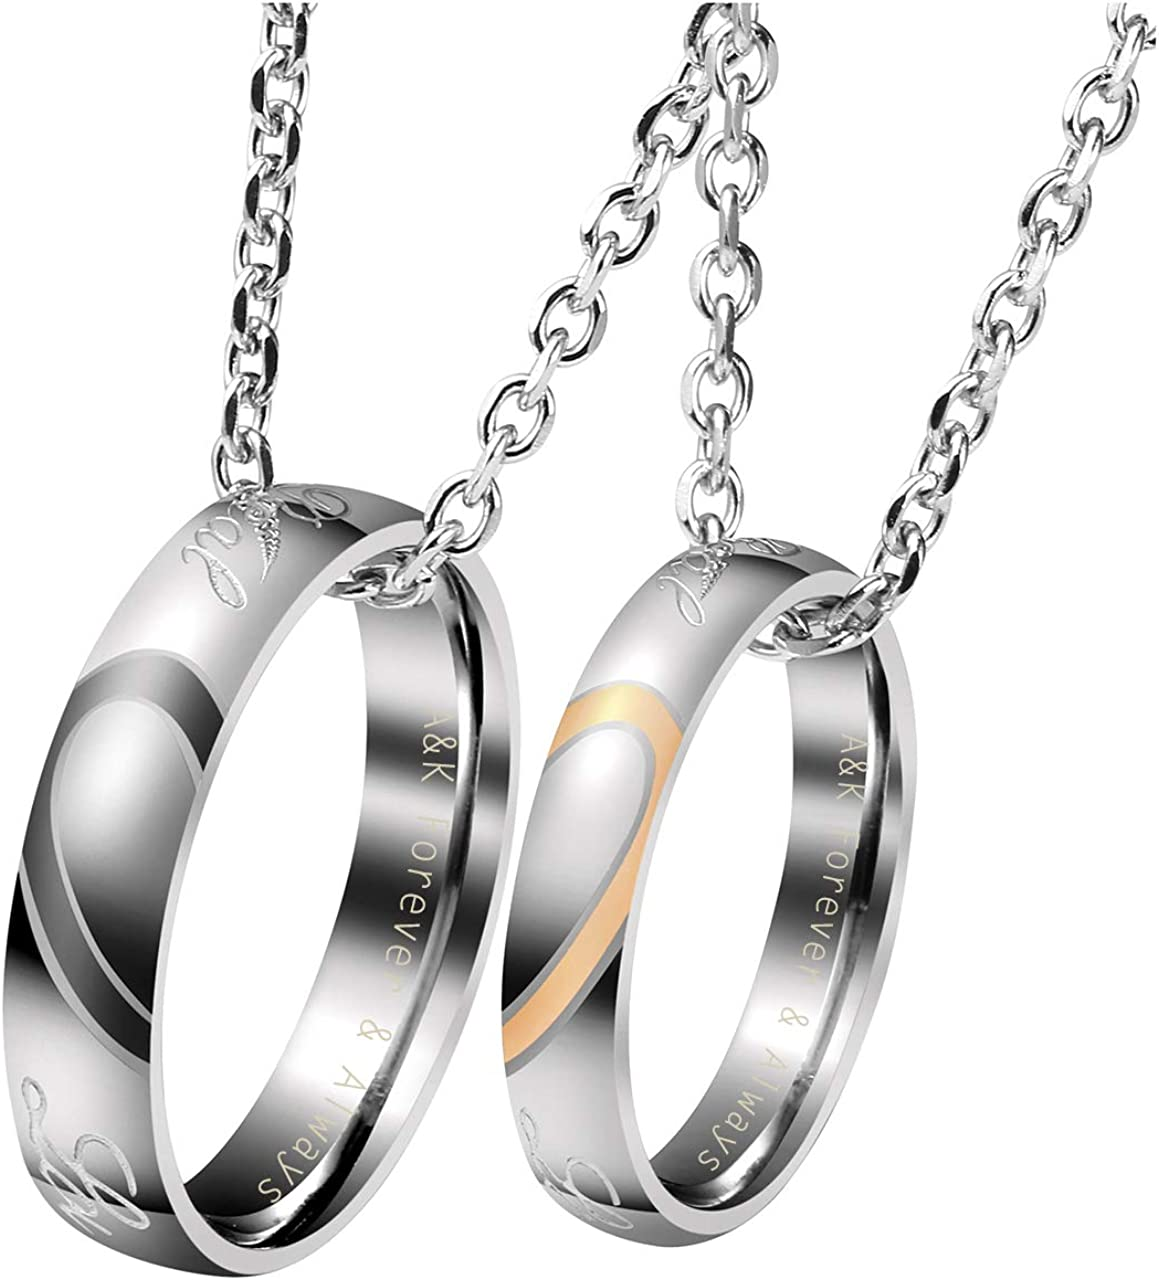 Personalized Master Custom Name His & Hers Real Love Matching Rings Set Stainless Steel Couples Pendant Necklaces Engagement Wedding Valentine's Day